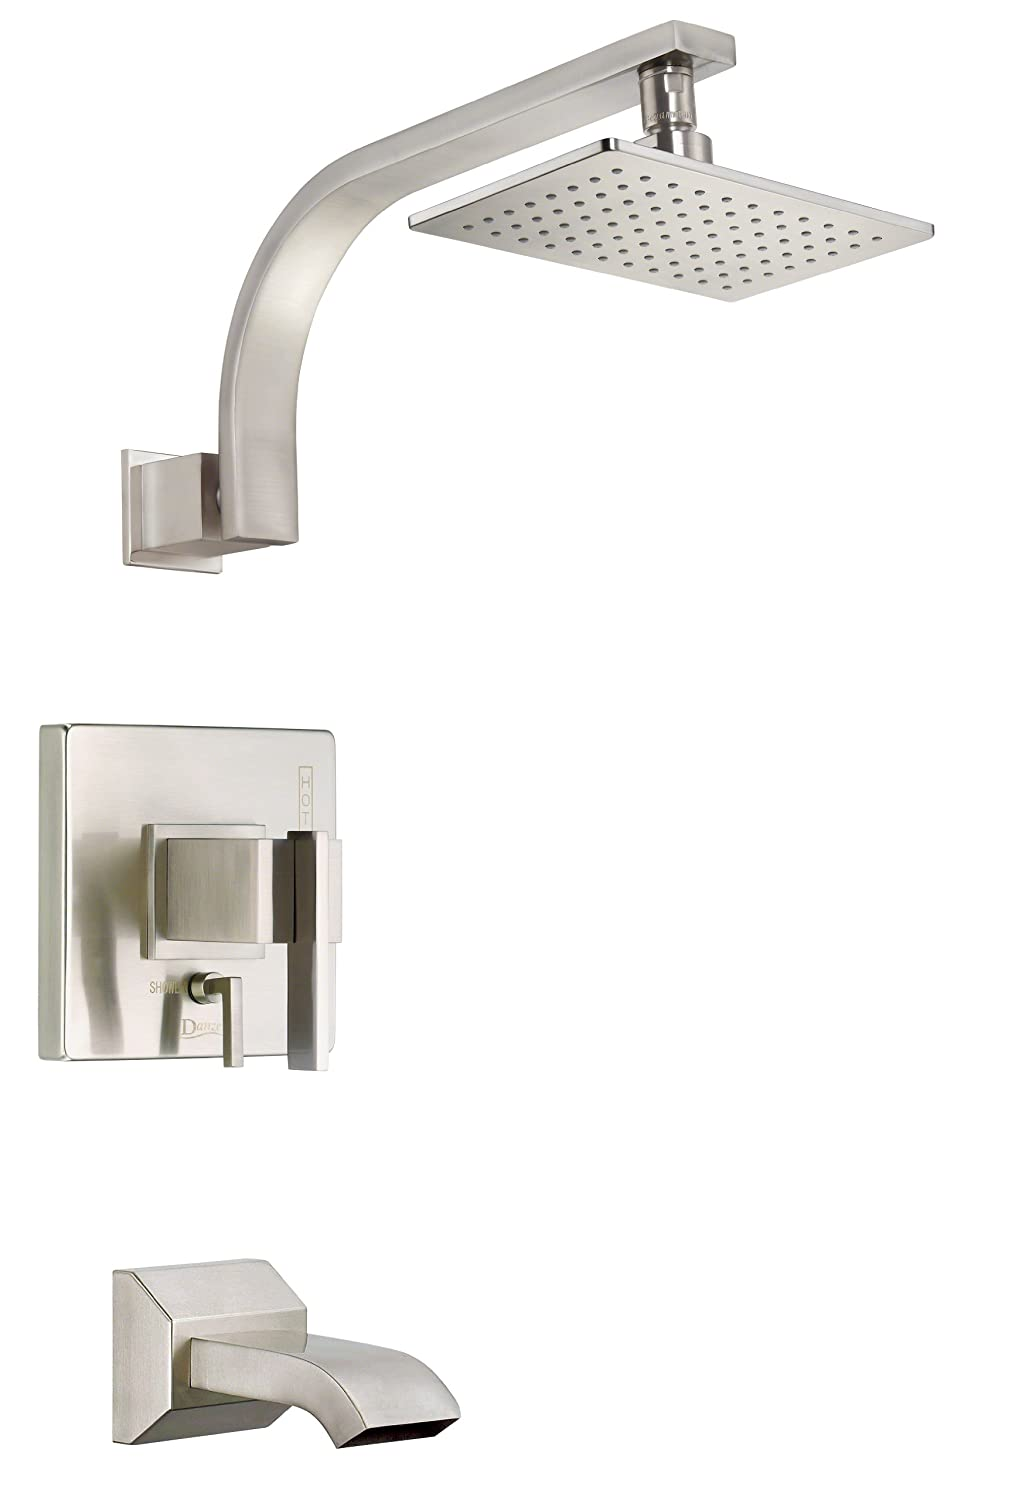 Charmant Danze D510044BNT Sirius Single Handle Tub And Shower Trim Kit, 2.5 GPM,  Valve Not Included, Brushed Nickel   Fixed Showerheads   Amazon.com